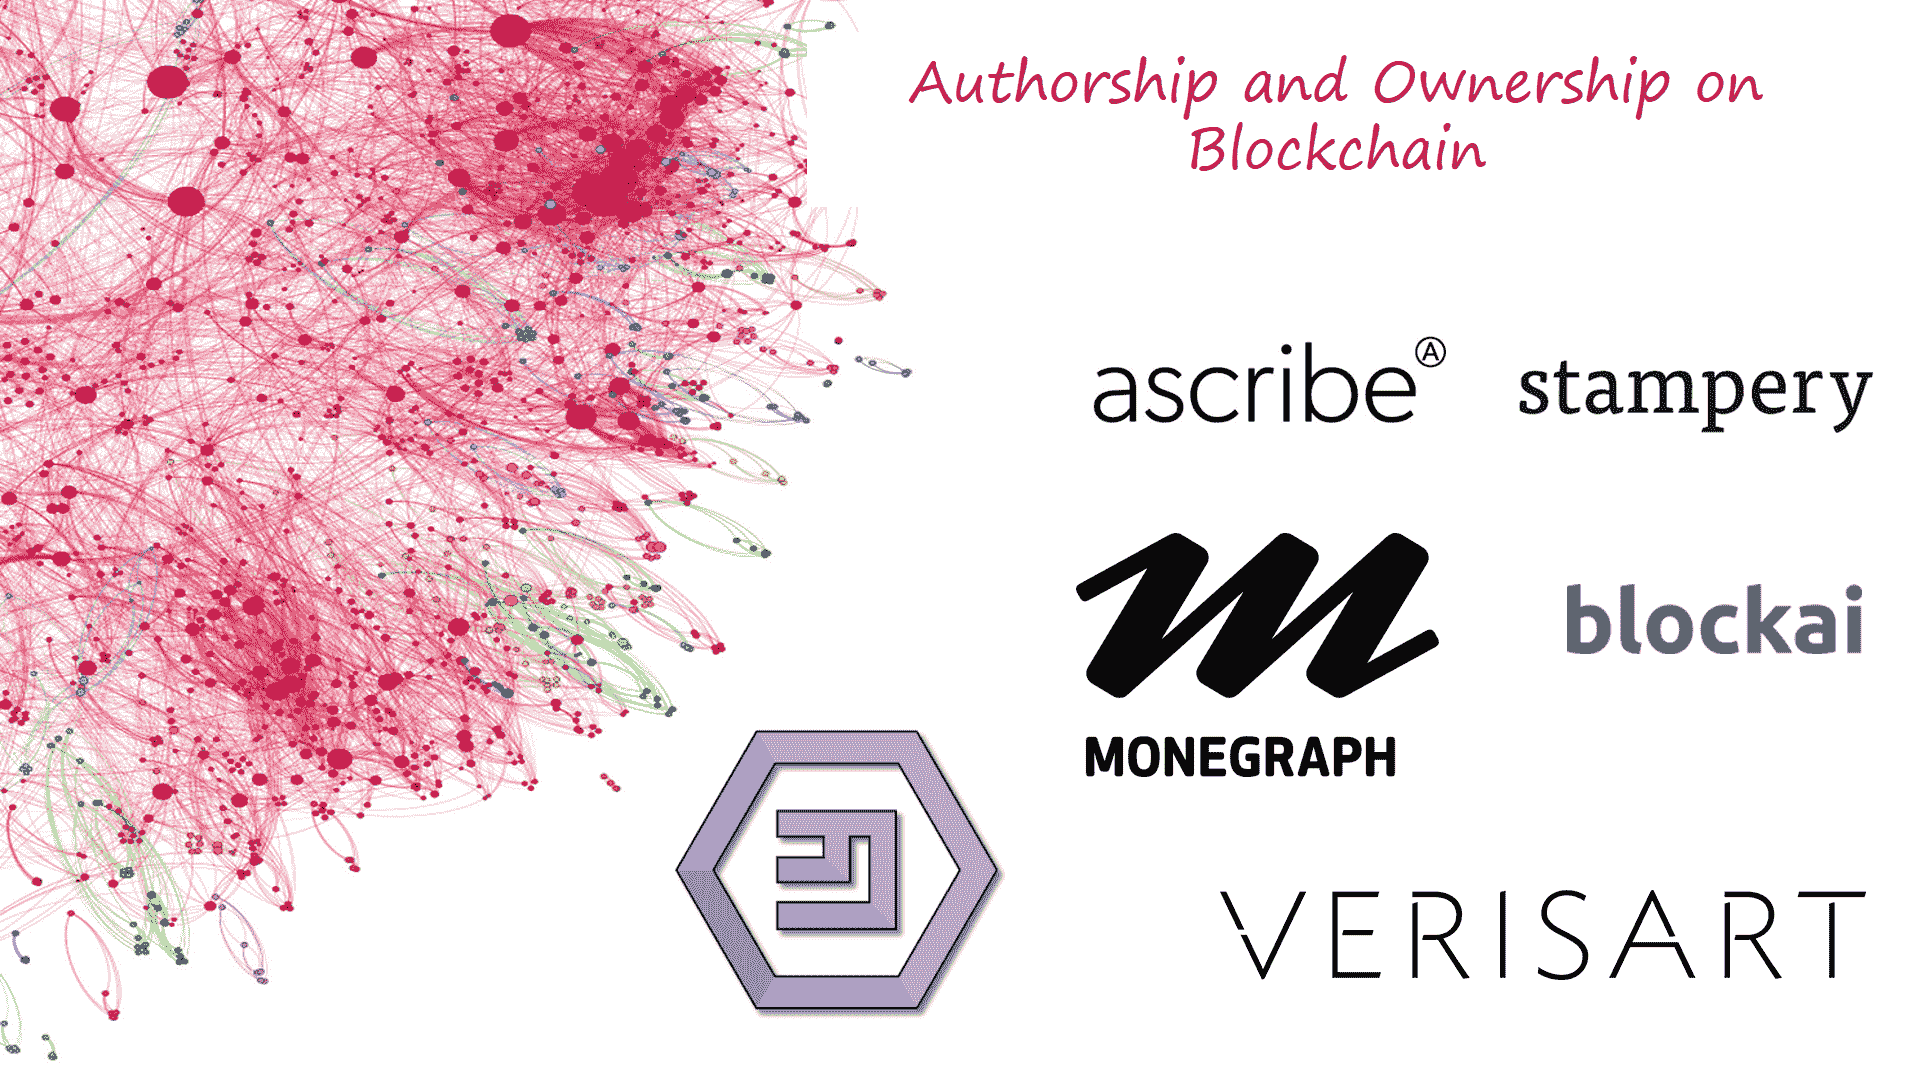 proof of authorship and ownership on blockchain